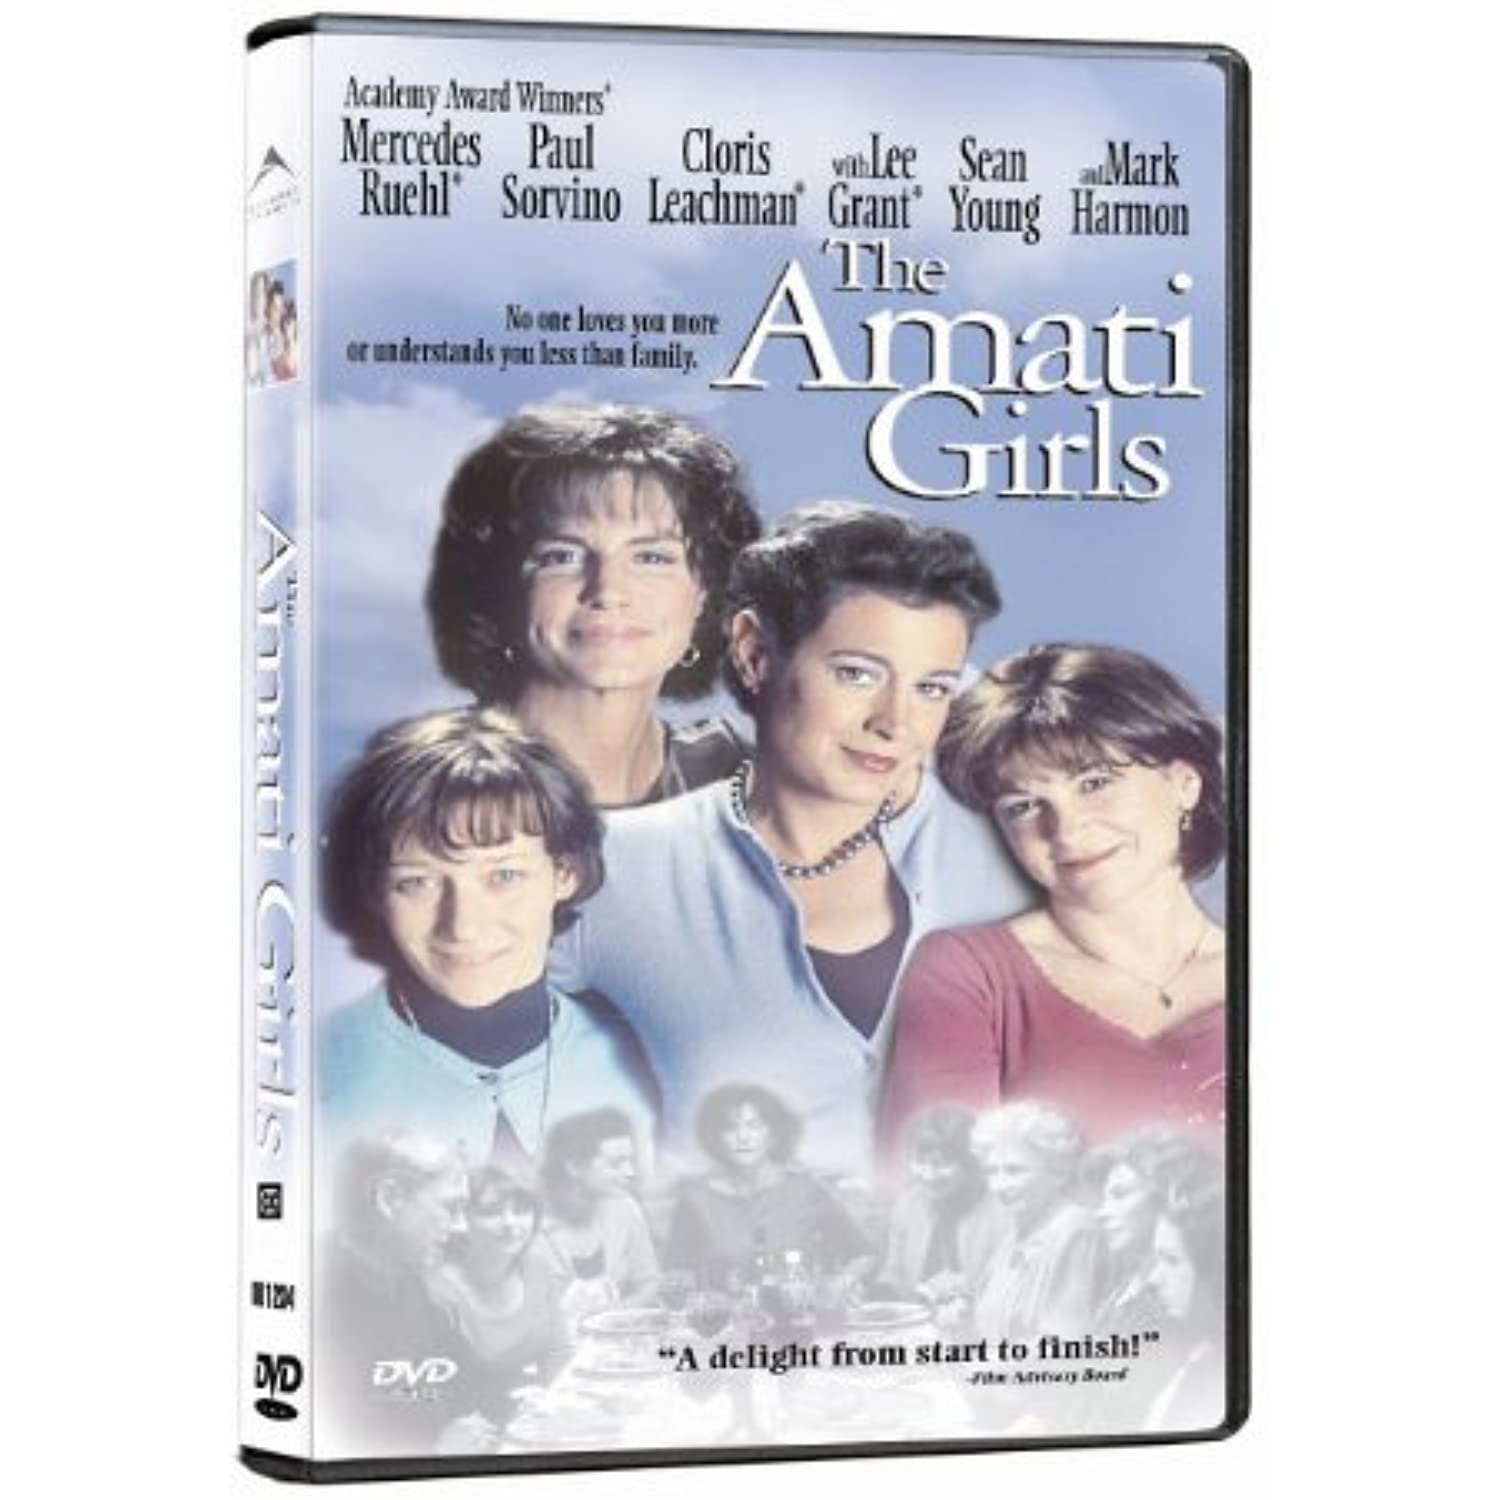 The Amati Girls [DVD] (2001) DVD